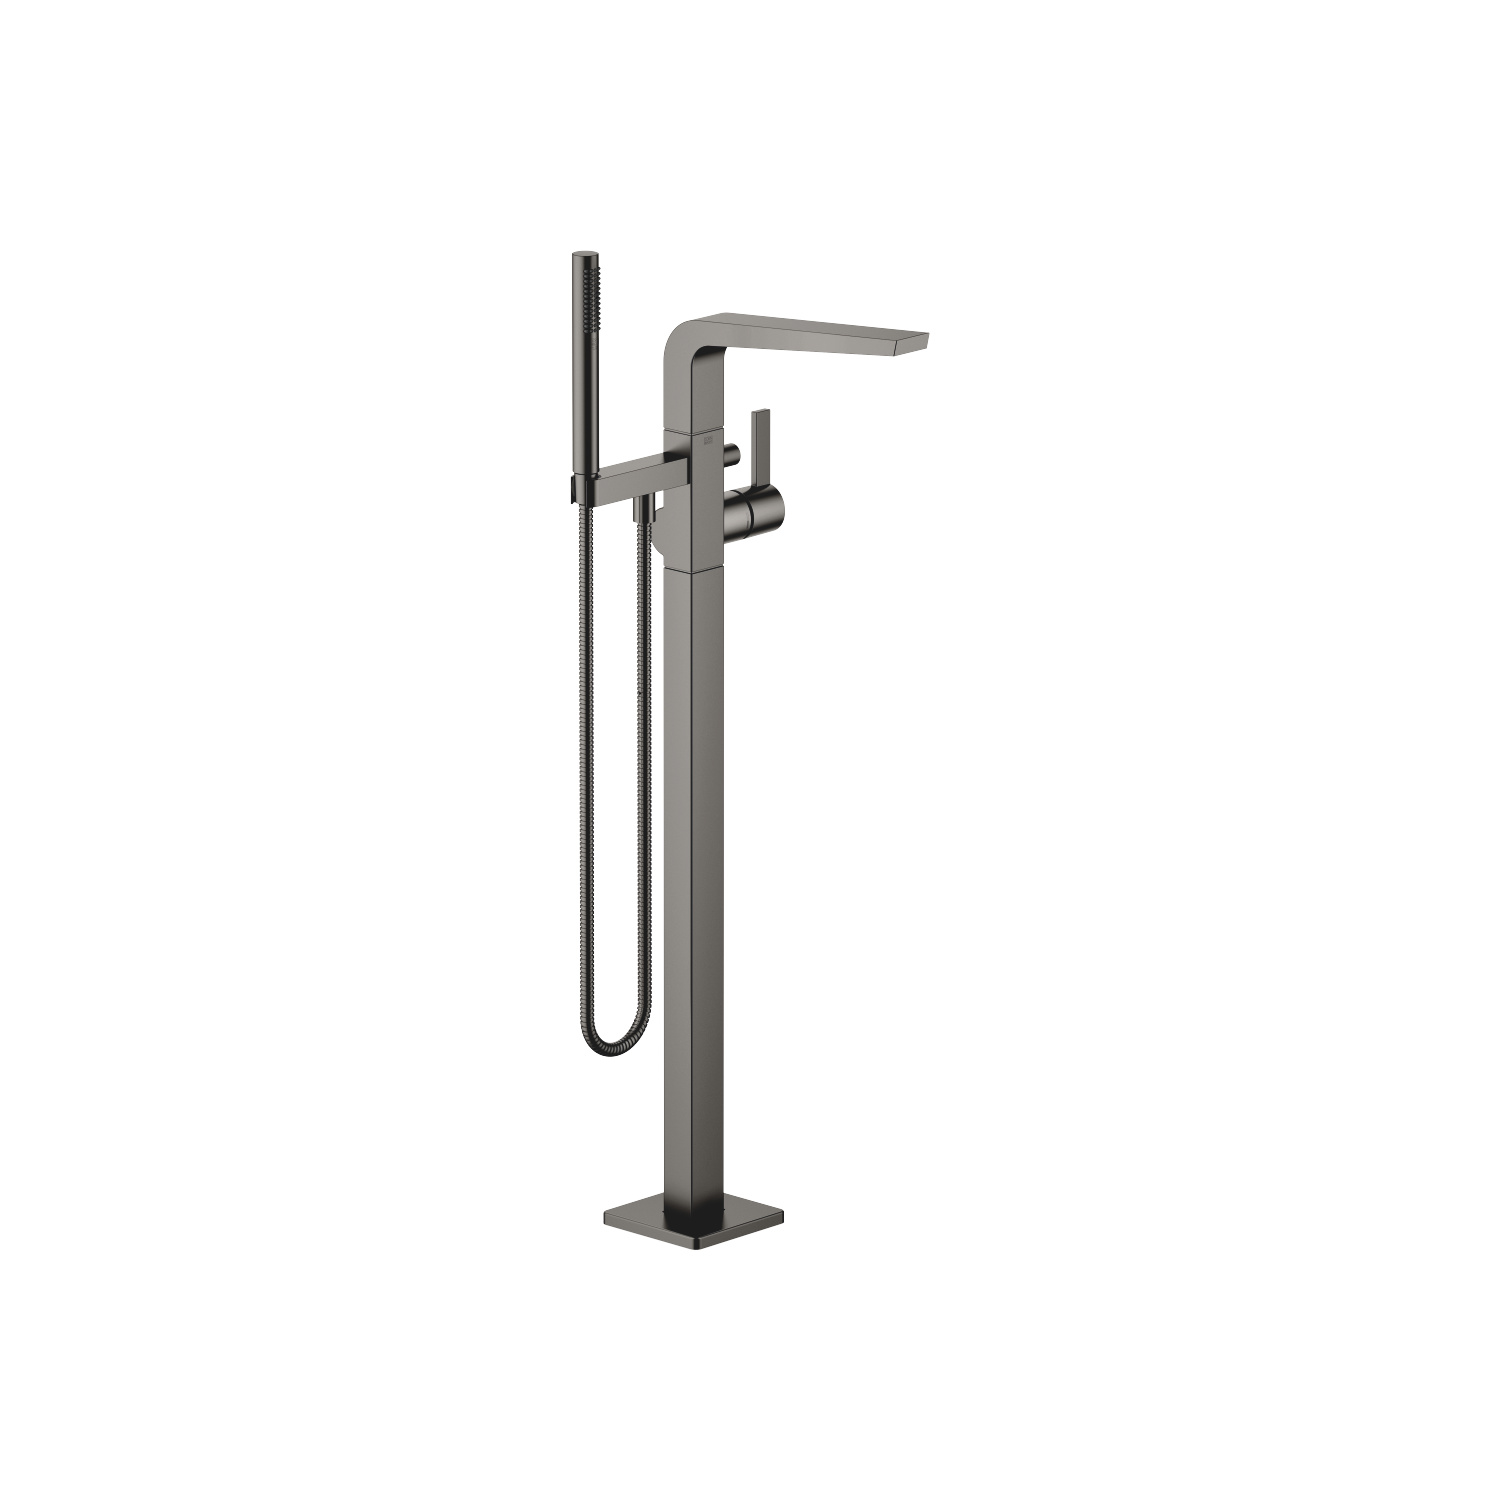 Single-lever bath mixer with stand pipe for free-standing assembly with hand shower set - Dark Platinum matt